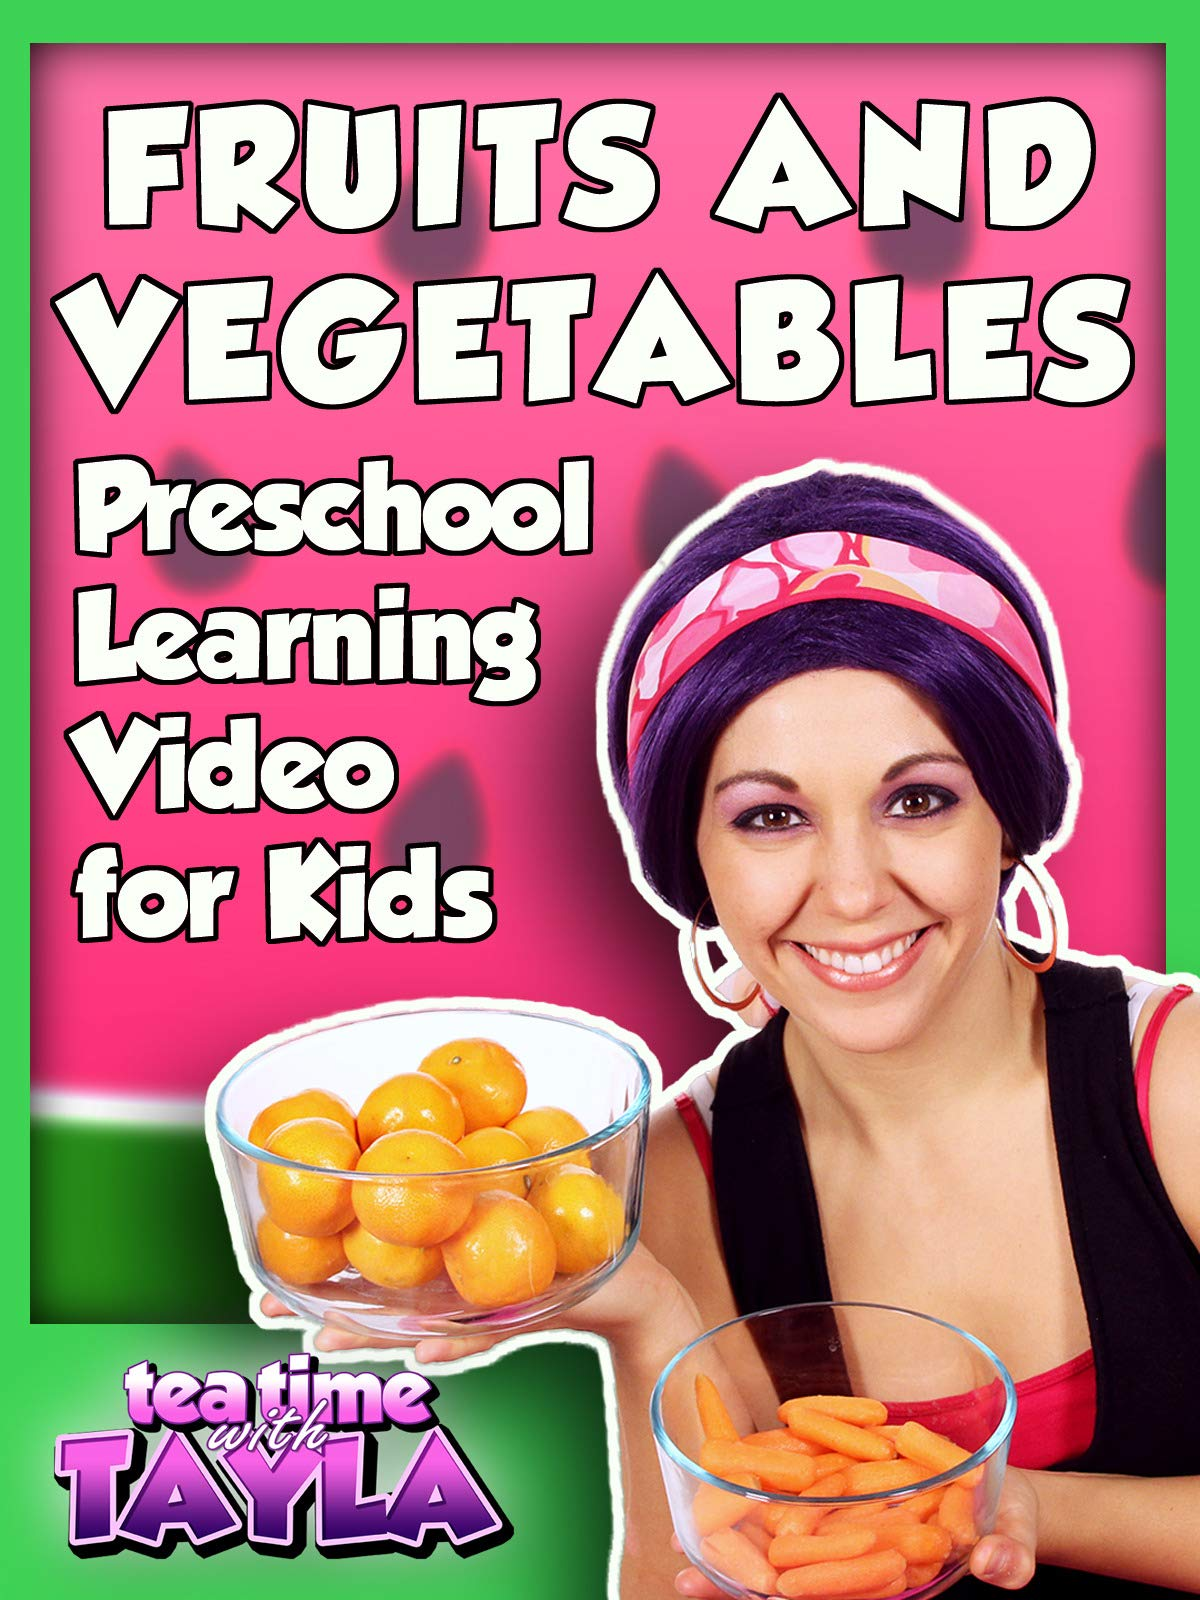 Tea Time with Tayla: Fruits and Vegetables - Preschool Learning Video for Kids on Amazon Prime Instant Video UK